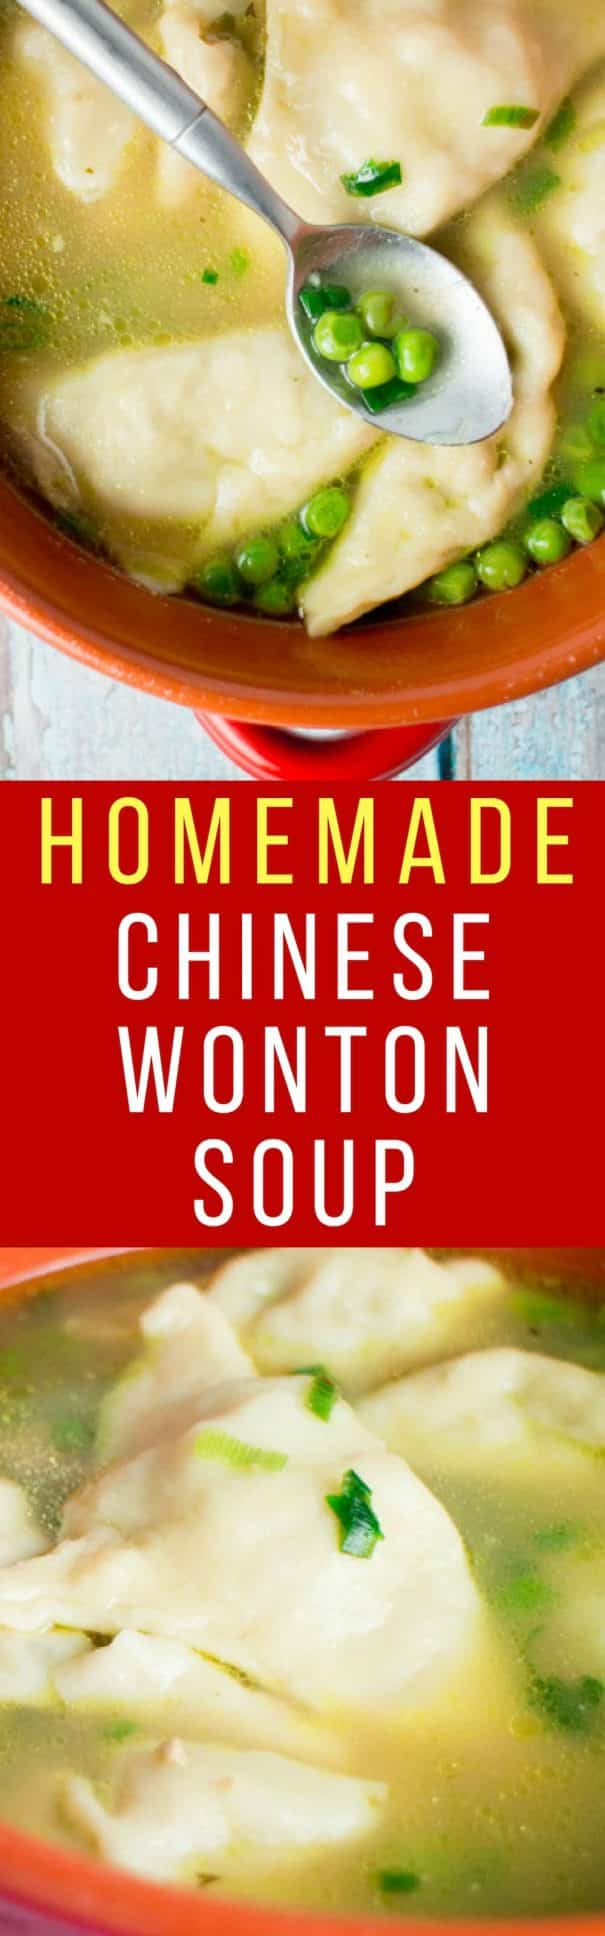 Homemade Chinese Wonton Soup recipe that's authentic and easy to make! The wontons are made from scratch and the dumplings are filled with pork. It tastes just like your favorirte Chinese restaurant soup but much more healthy for you!